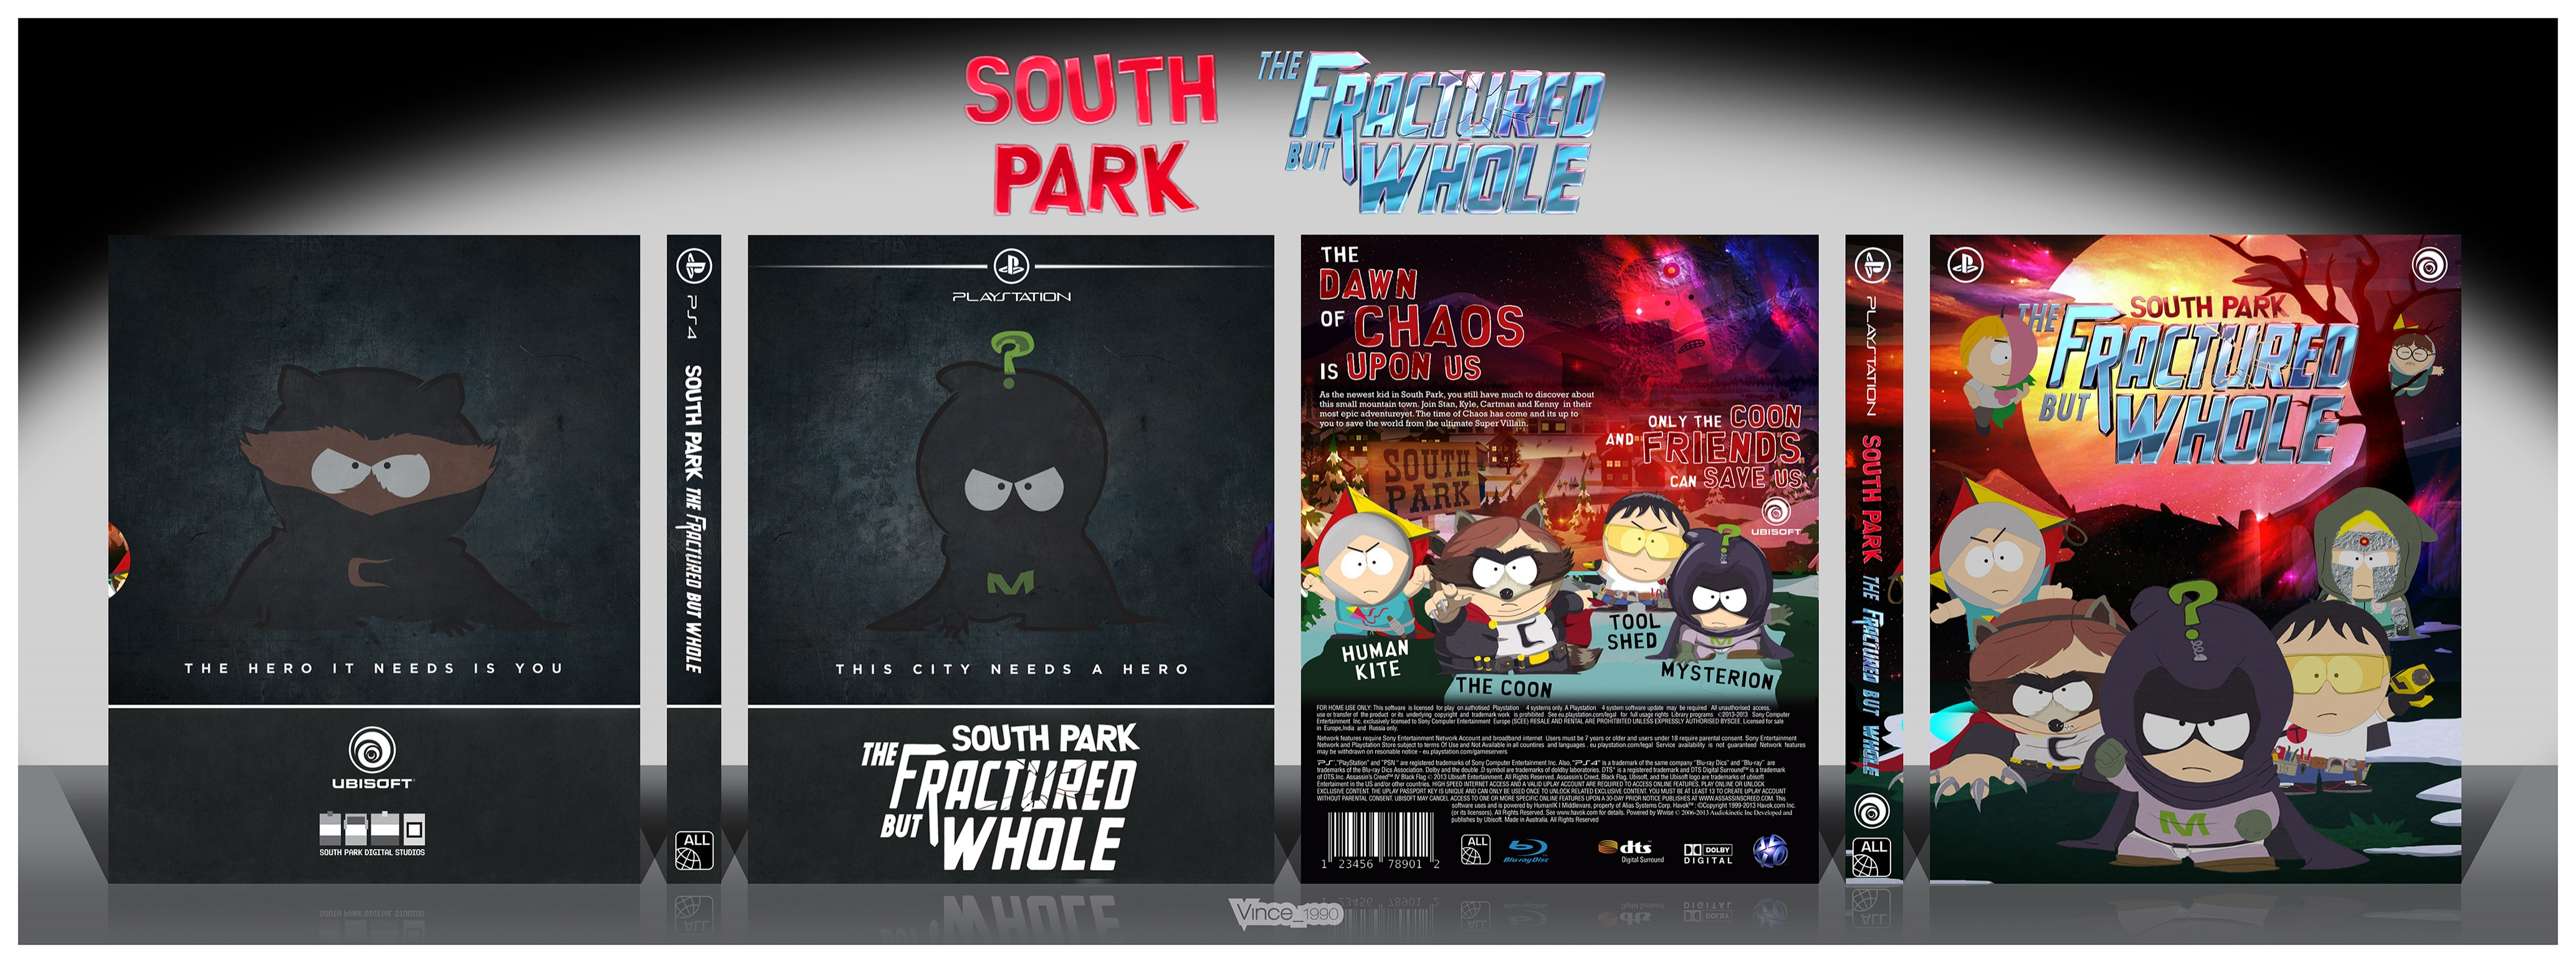 South Park - the Fractured but Whole box cover